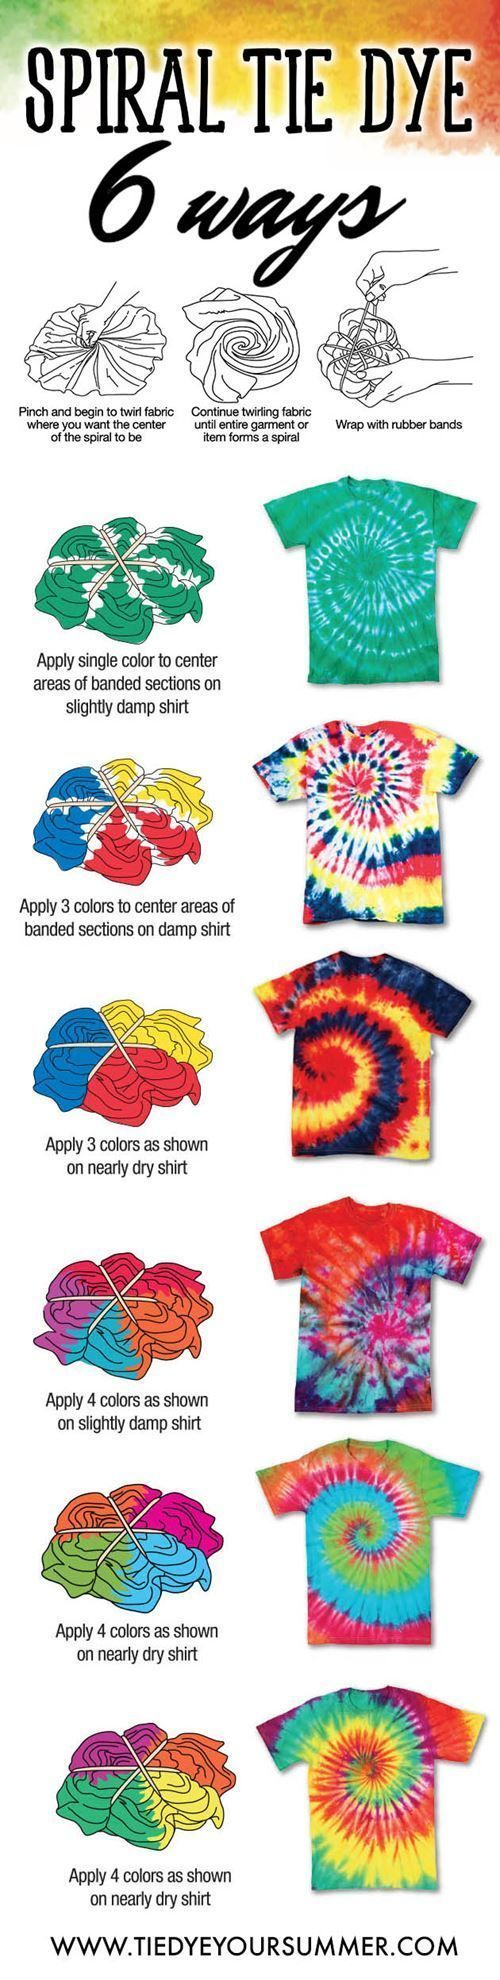 Tie Dye Your Summer With One Of These Cool Spiral Tie Dye Shirt Ideas The